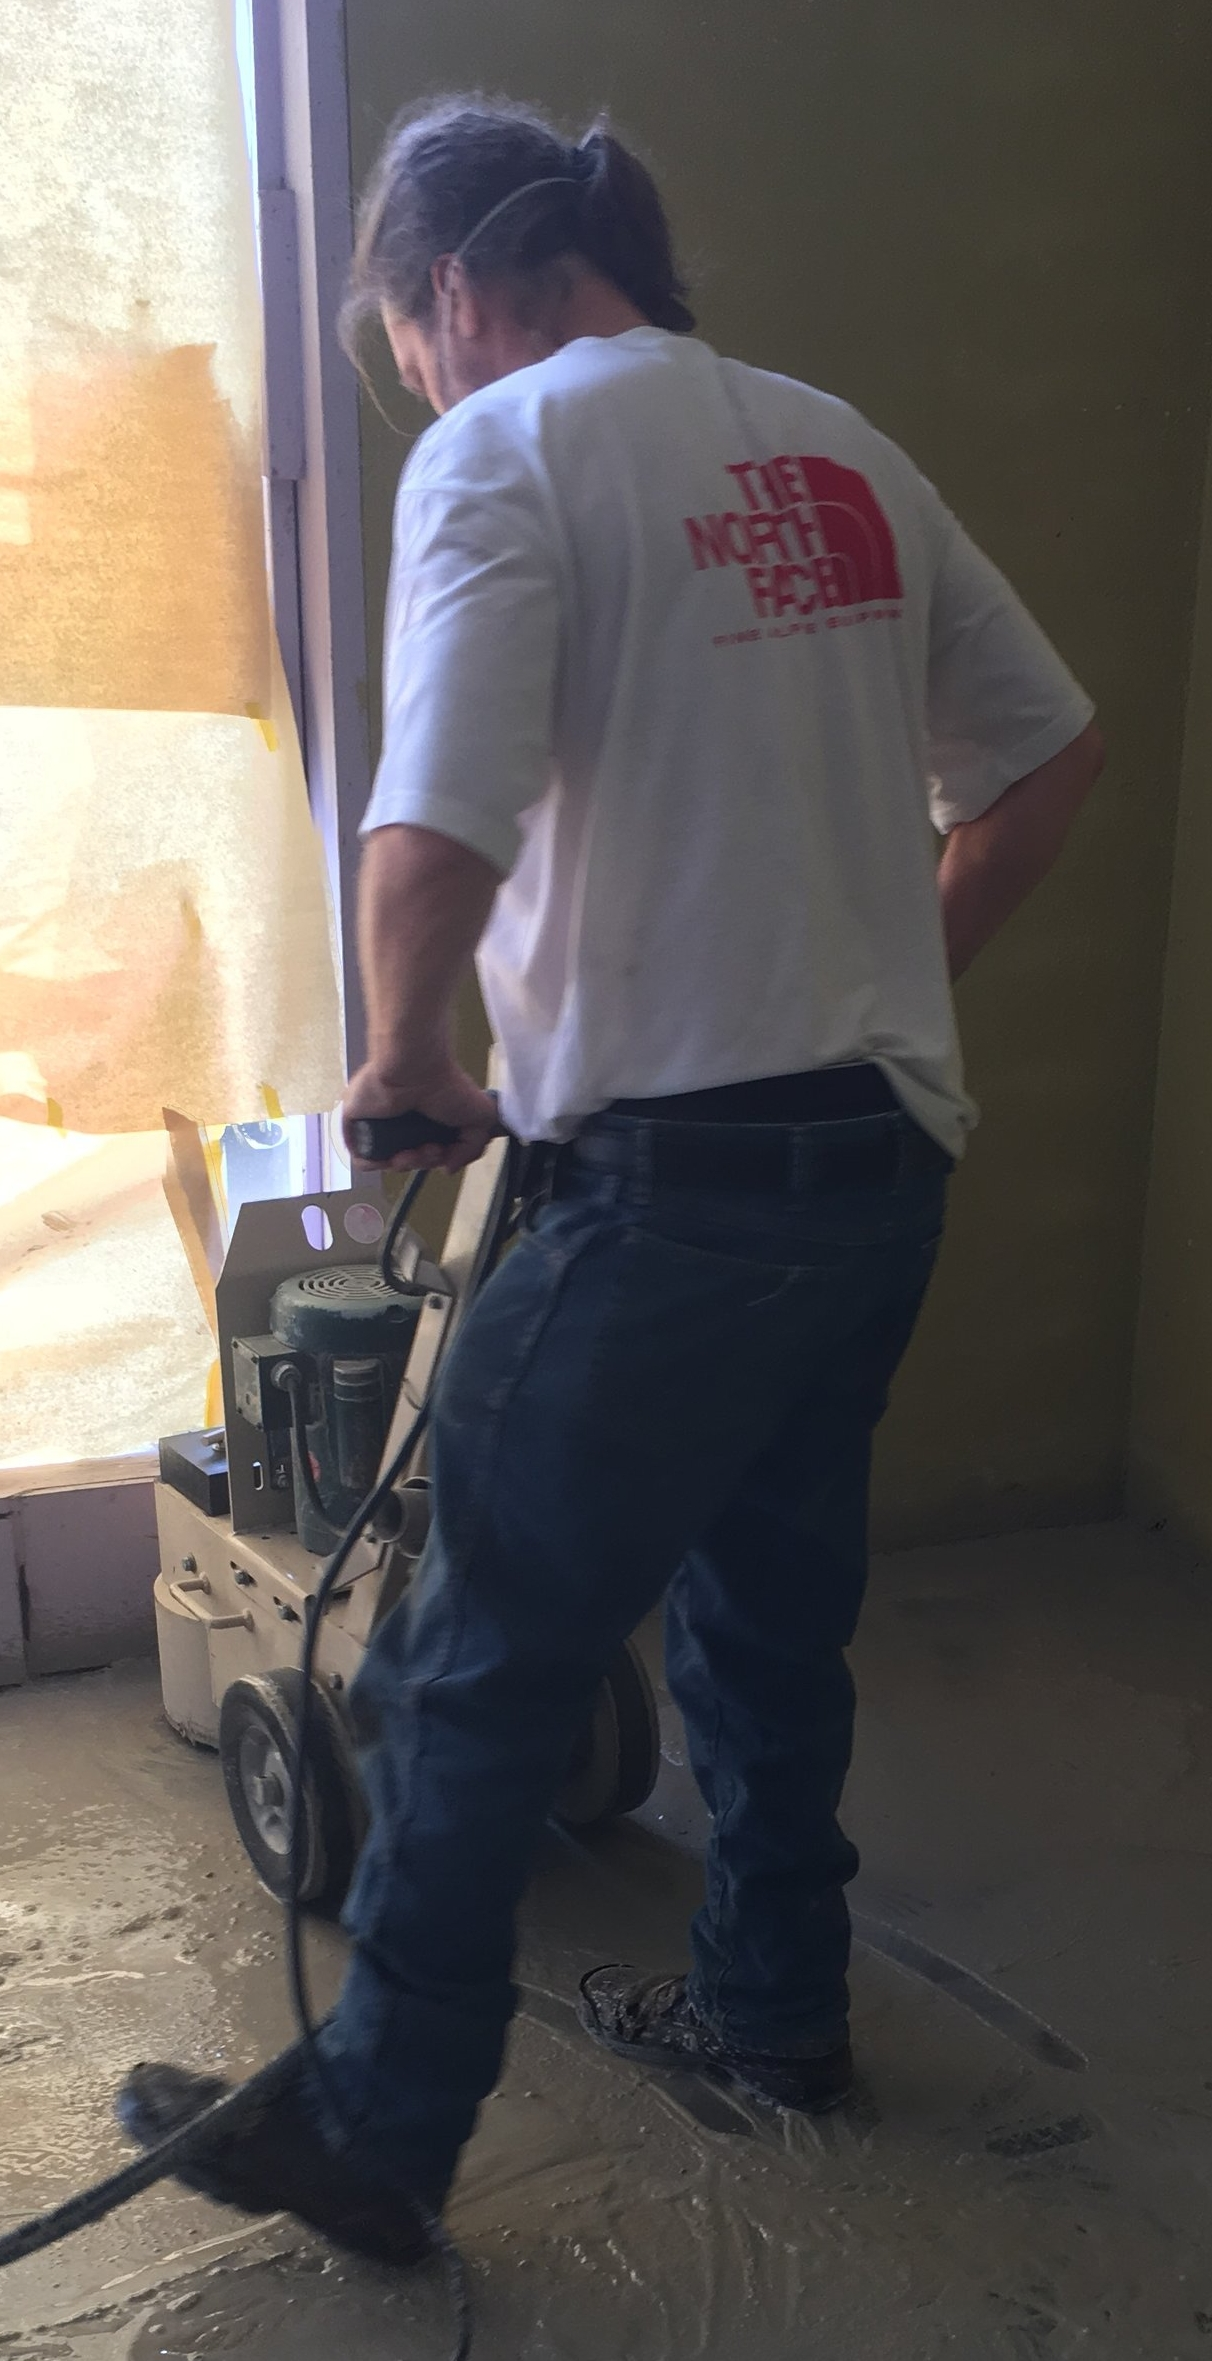 My hero working hard. Not sure what I would do without him. -